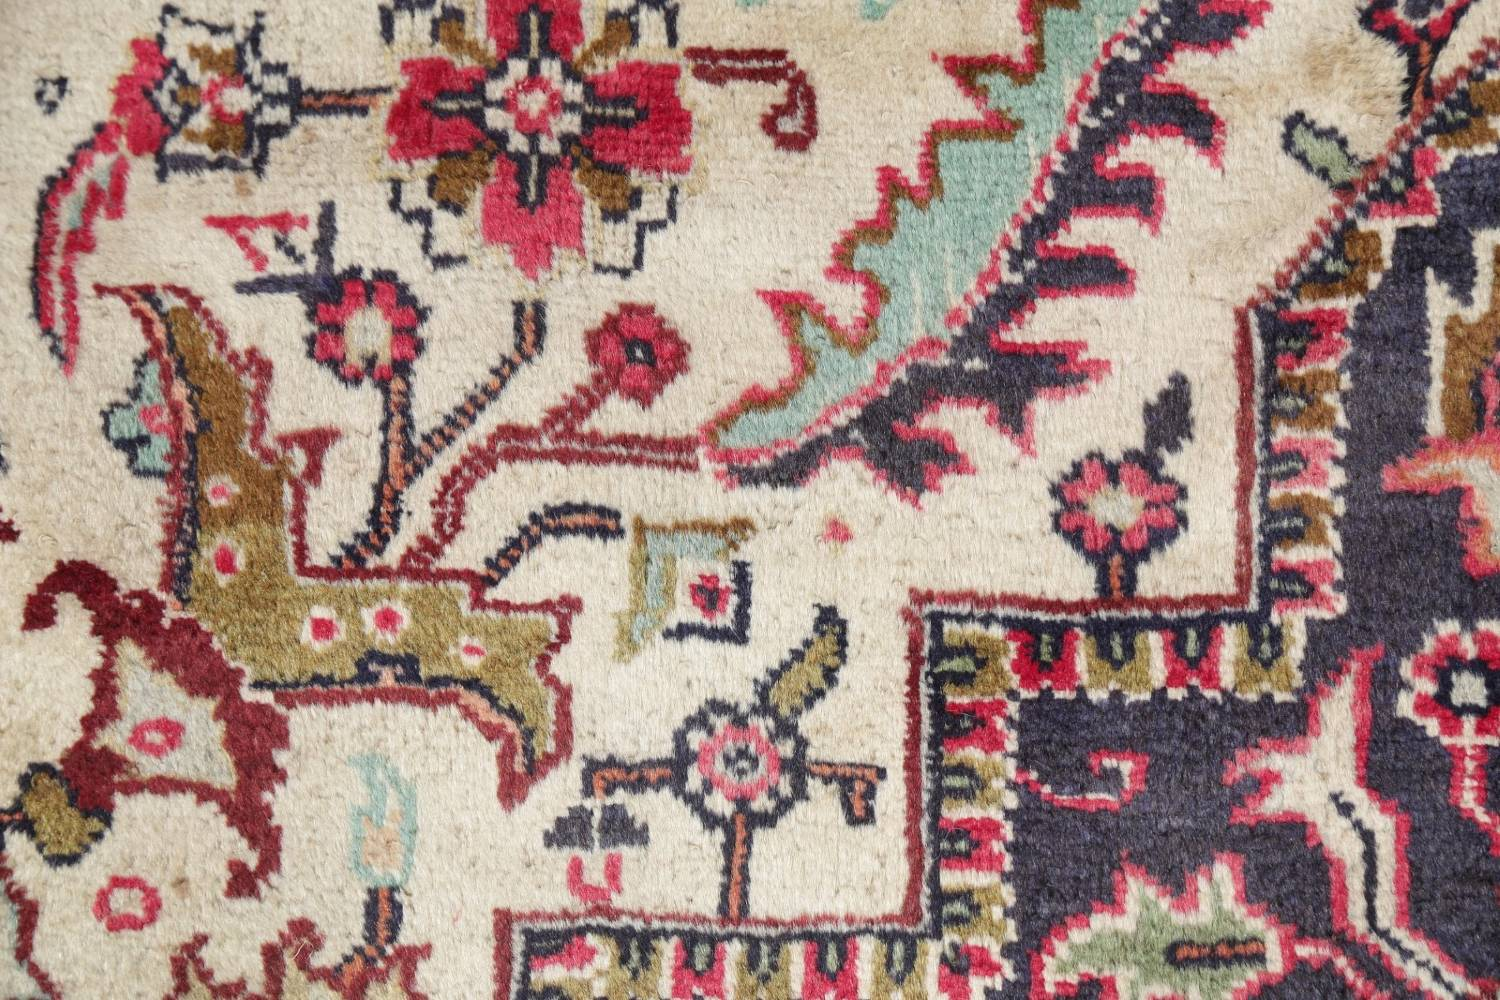 One-of-a-Kind Antique Heriz Serapi Persian Hand-Knotted 7x9 Wool Area Rug image 10